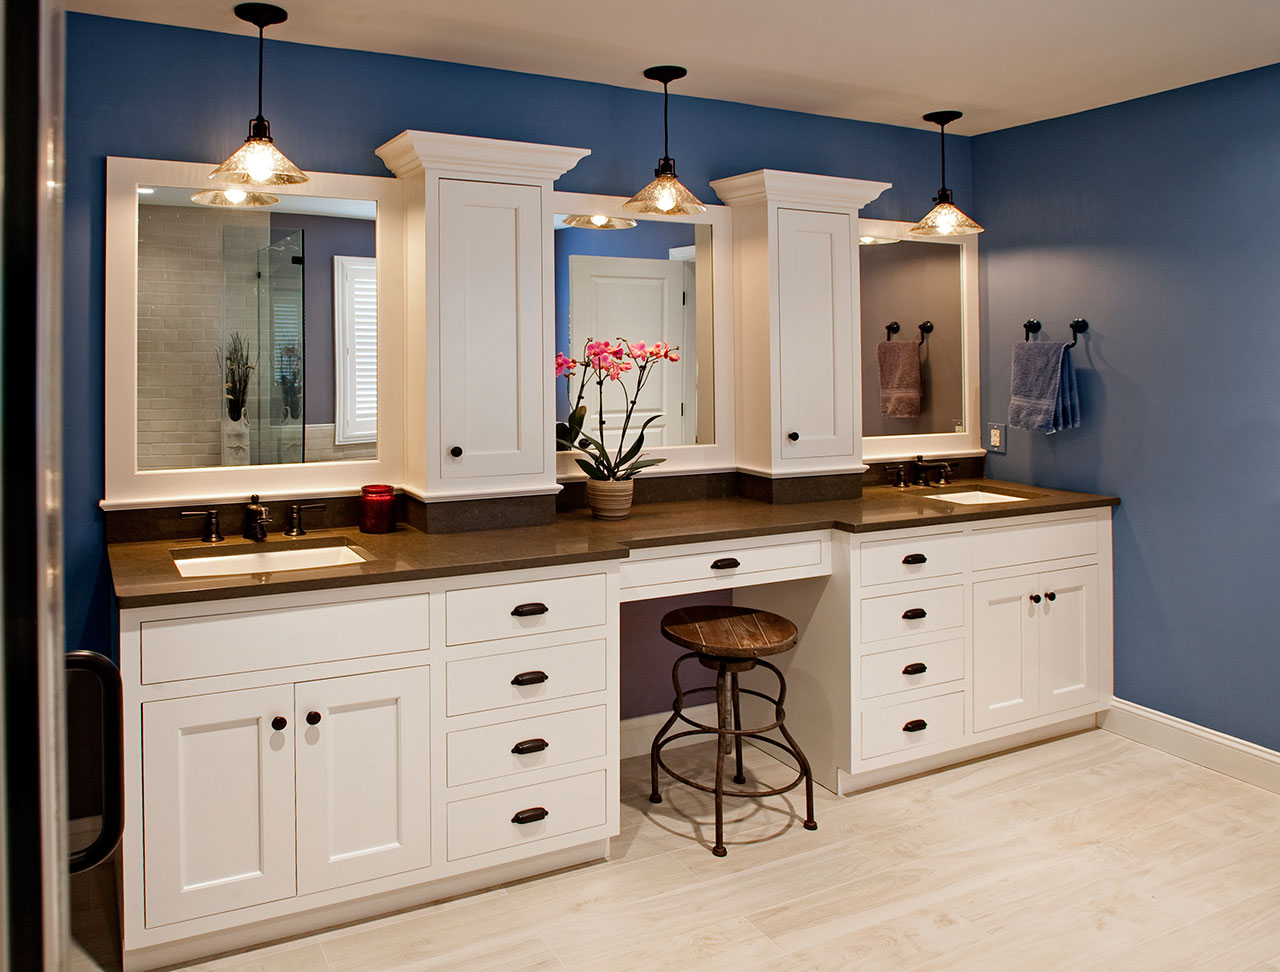 Transitional Bathrooms Designs & Remodeling | HTRenovations